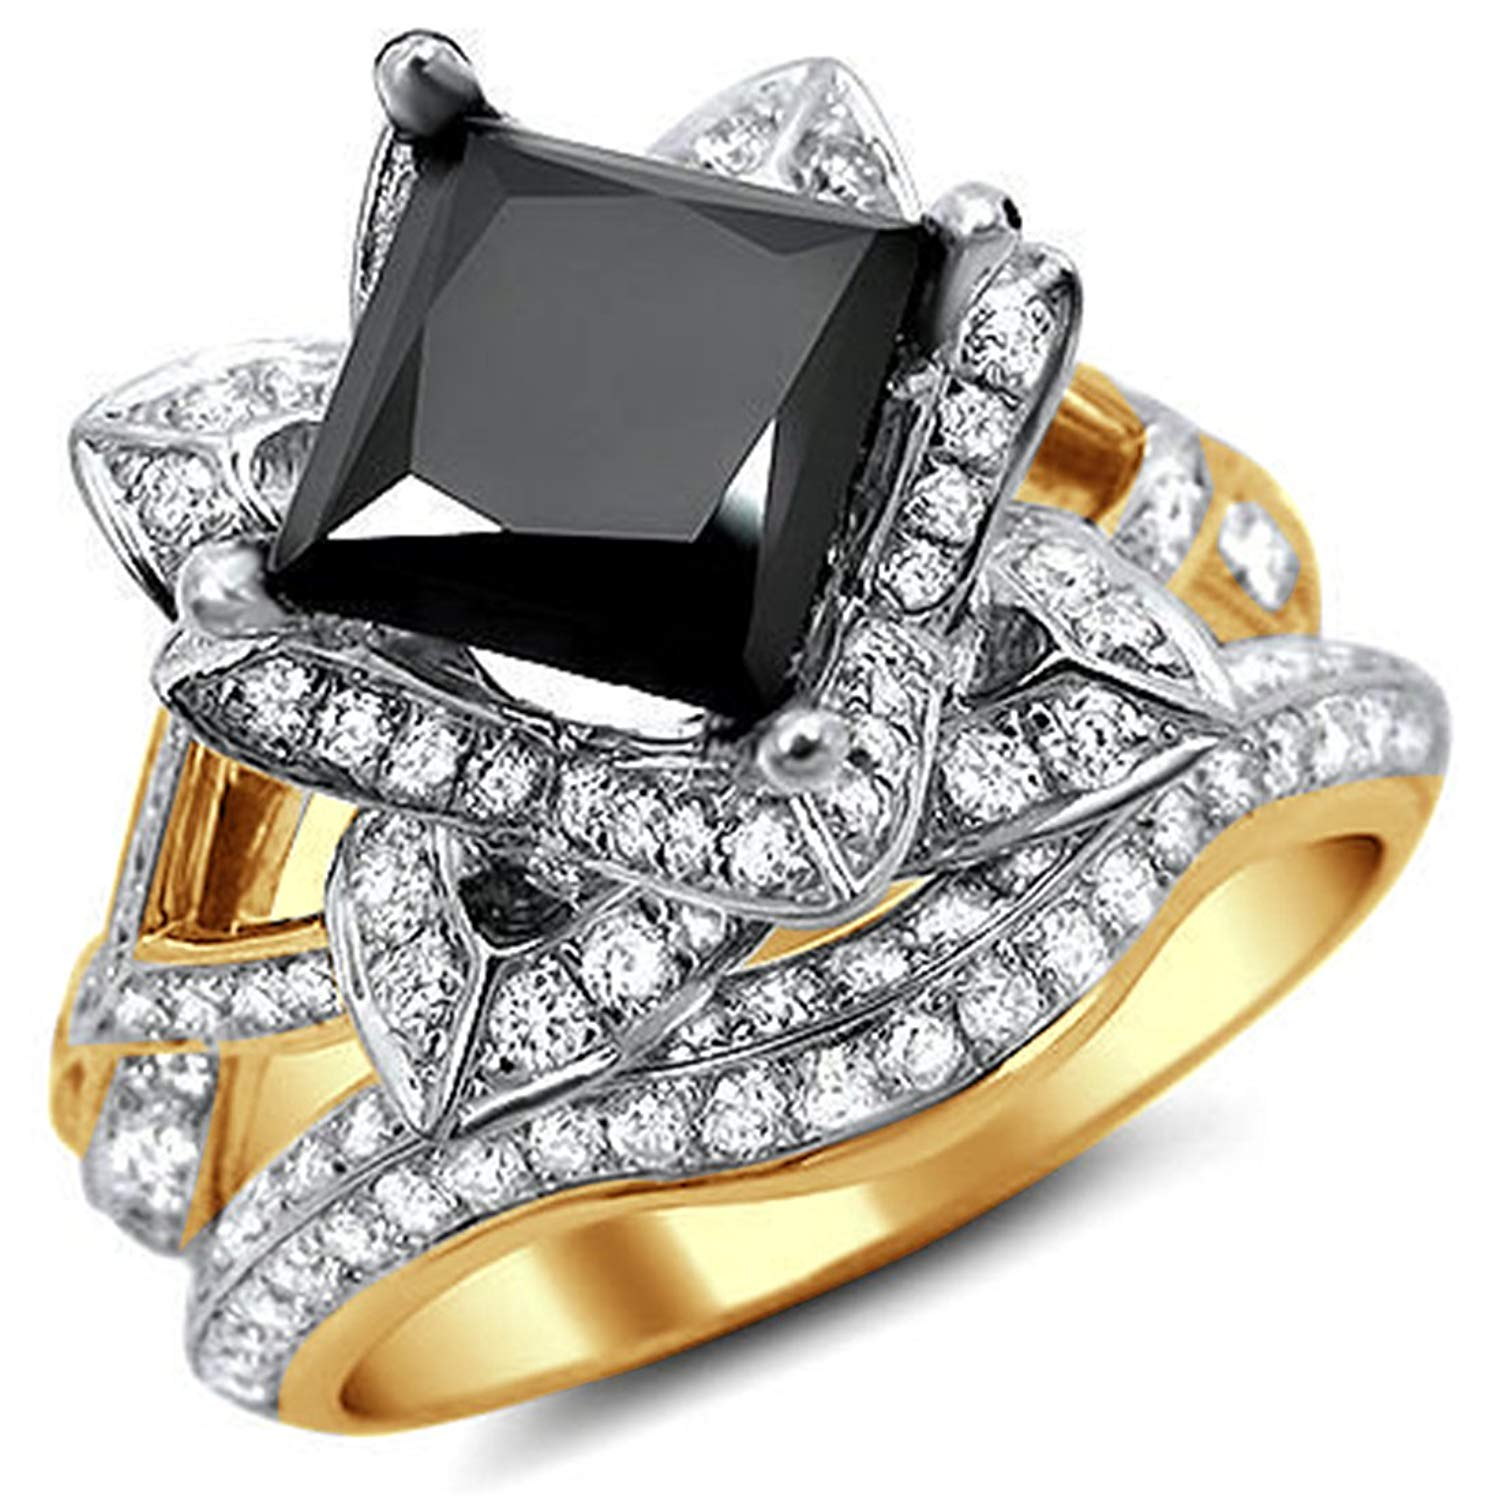 Cheap 3 Ct Princess Cut Engagement Rings Find 3 Ct Princess Cut